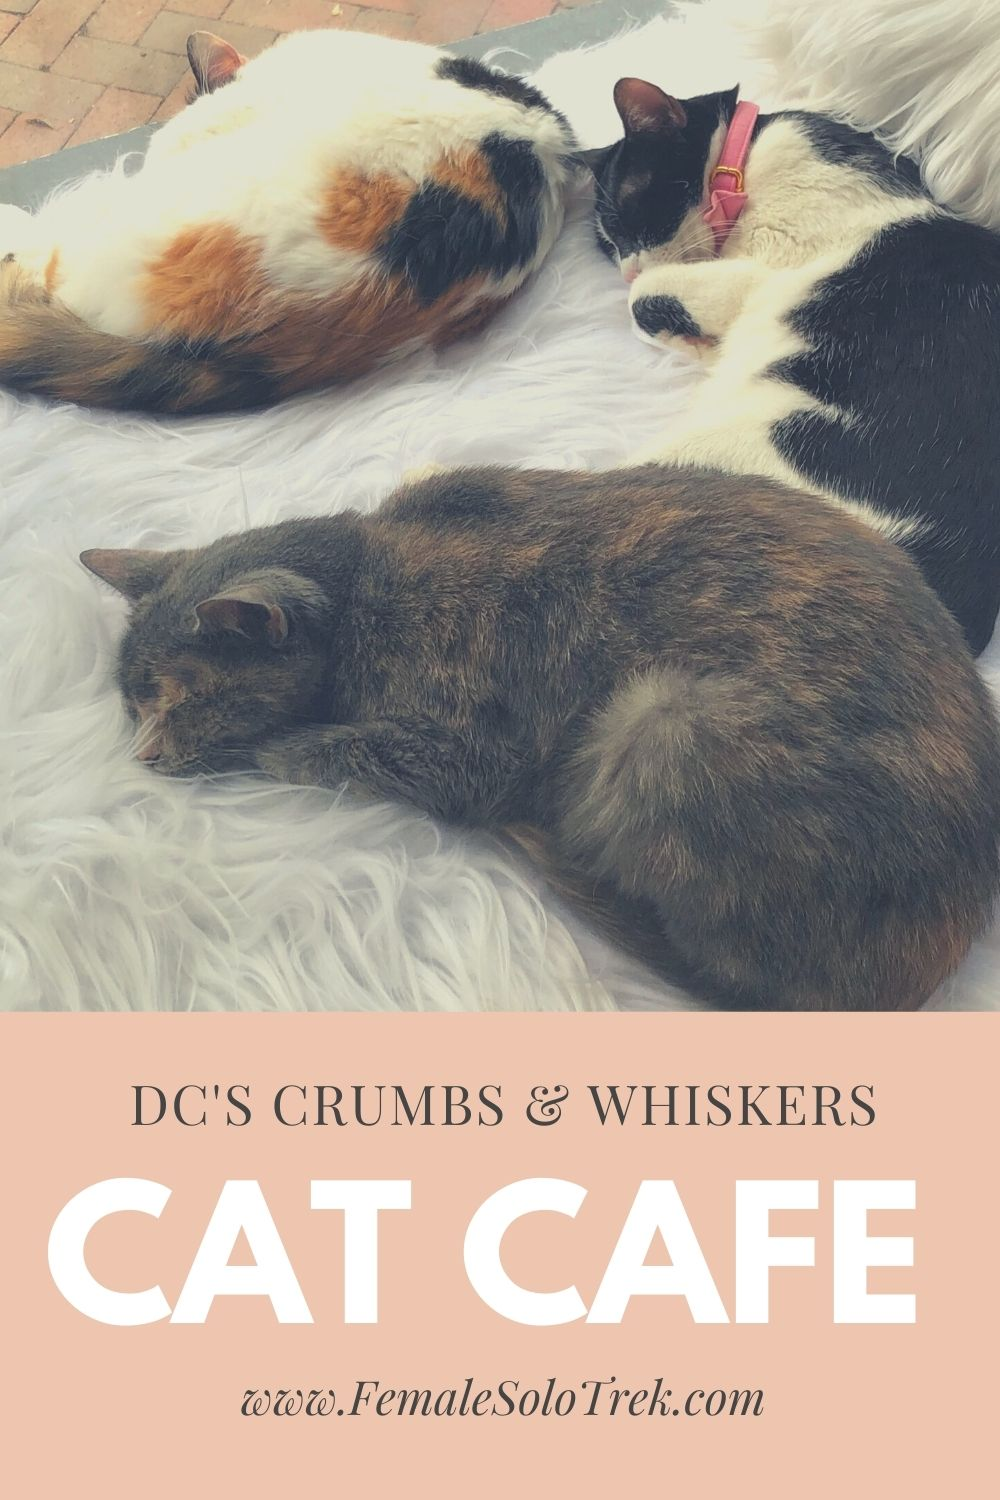 Crumbs & Whiskers is DC's first cat cafe.